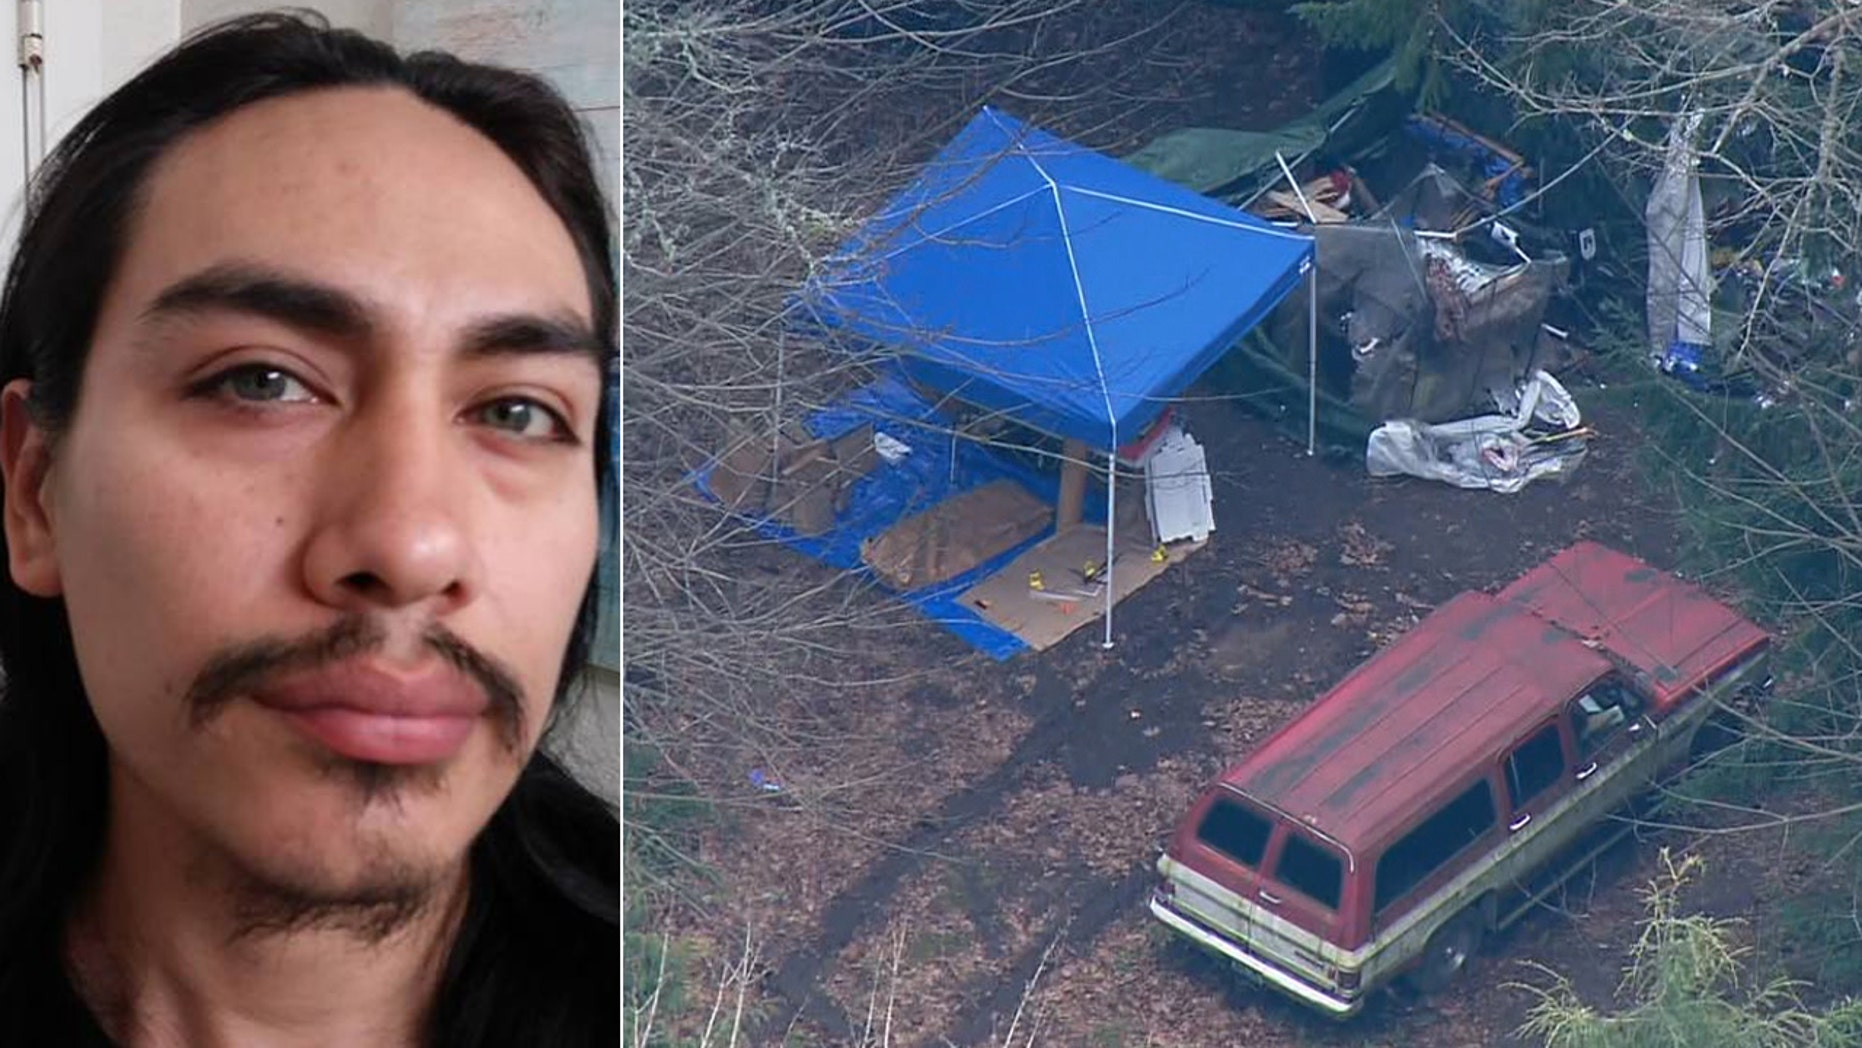 Police are searching for Jacob Gonzales, who they identified as a person of interest in the slaying of a 26-year-old woman found beheaded near a survivalist bunker in Washington.